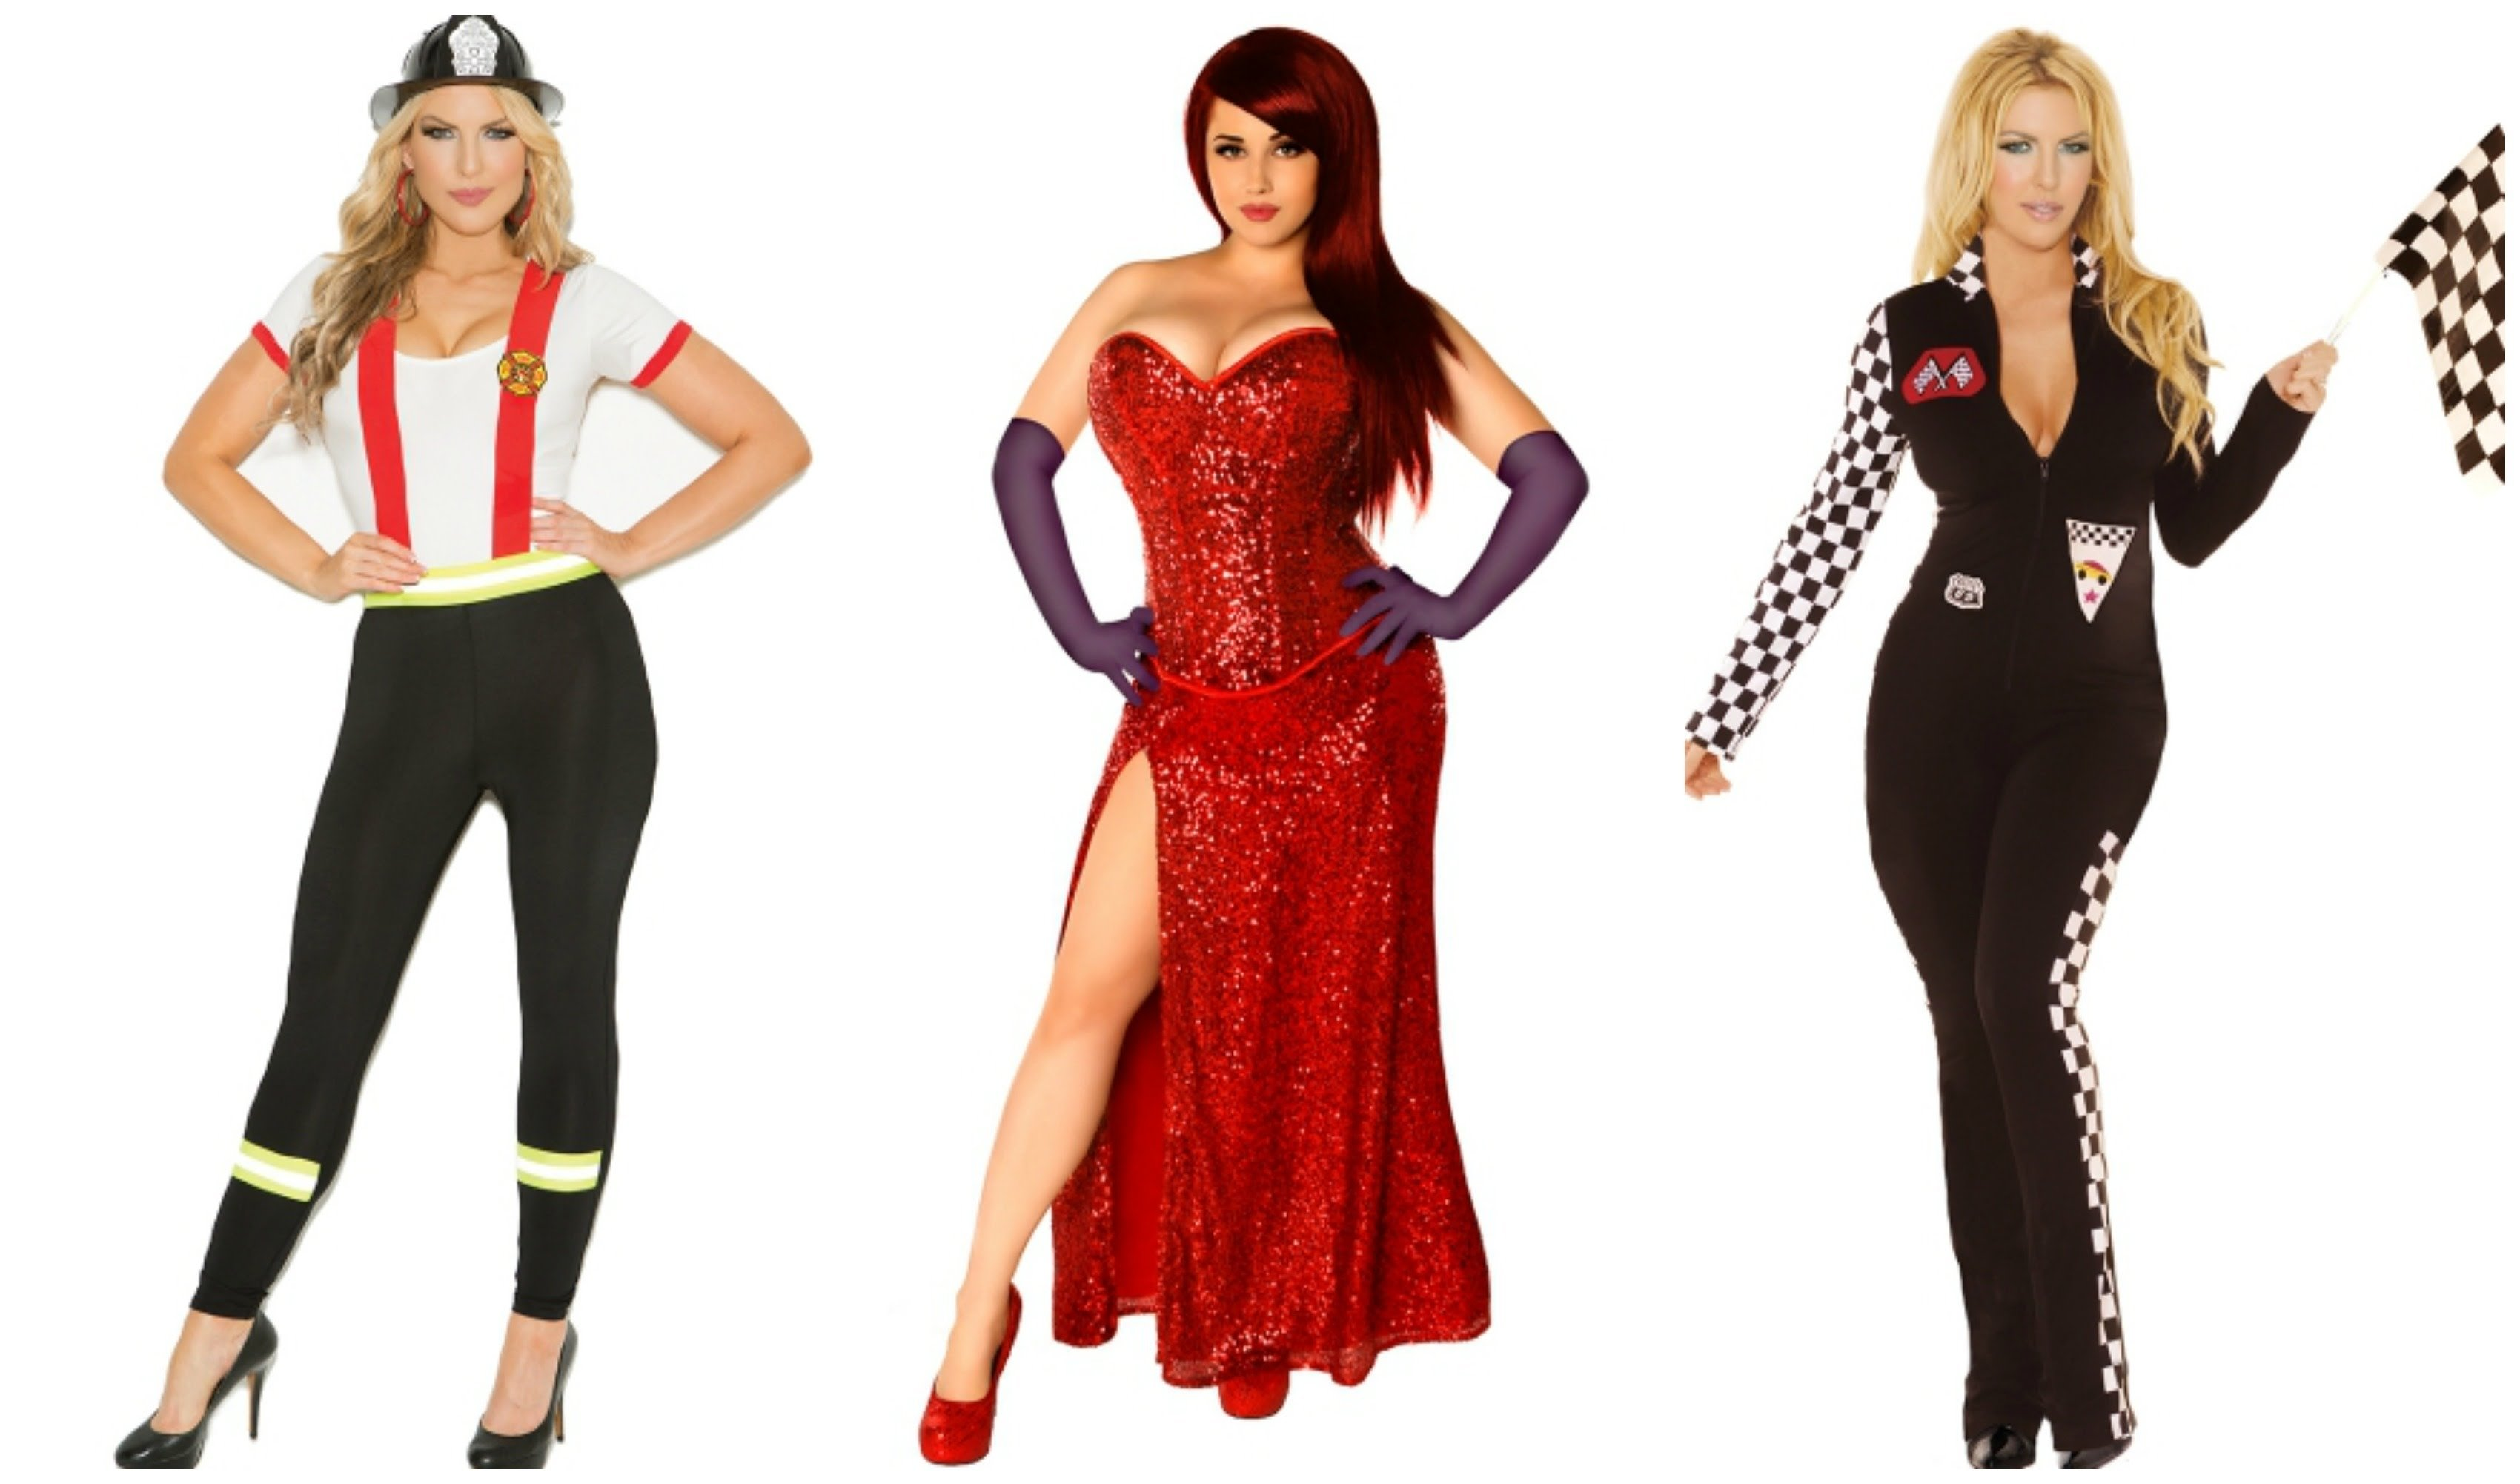 lovable plus size halloween costume ideas sexy halloween costumes ideas for plus size women lookbook jpg